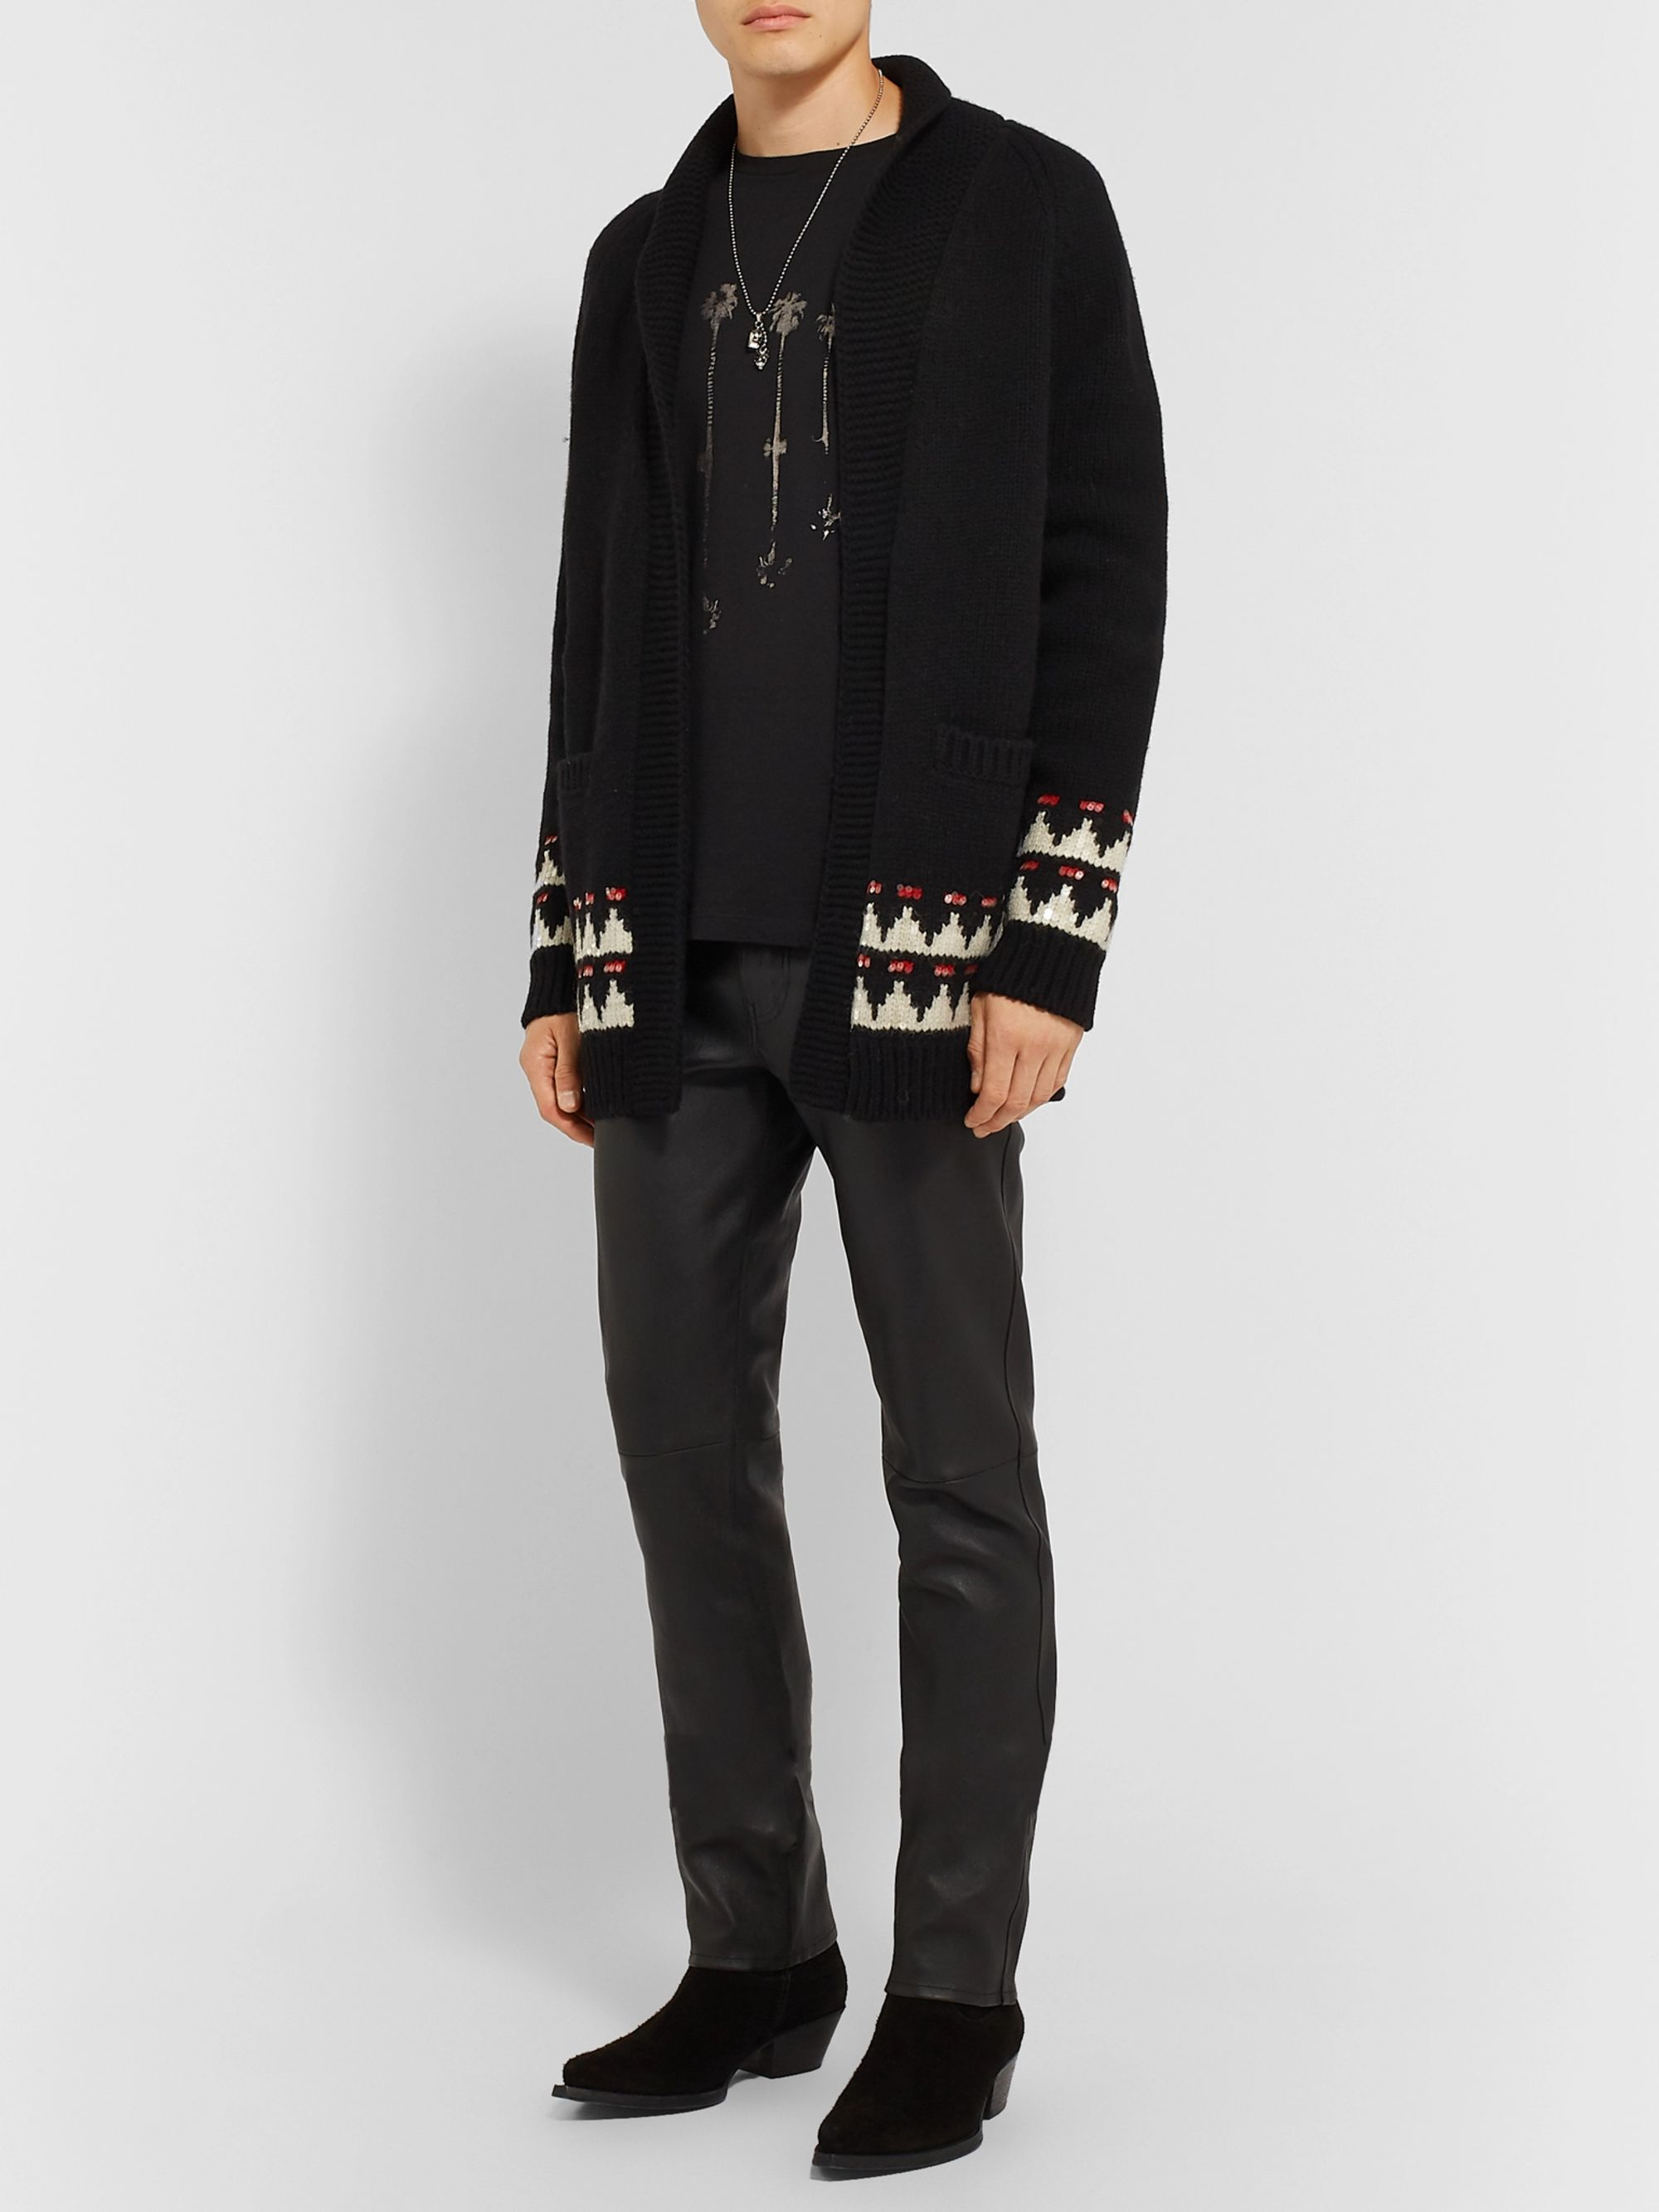 SAINT LAURENT Sequin-Embellished Intarsia Wool Cardigan